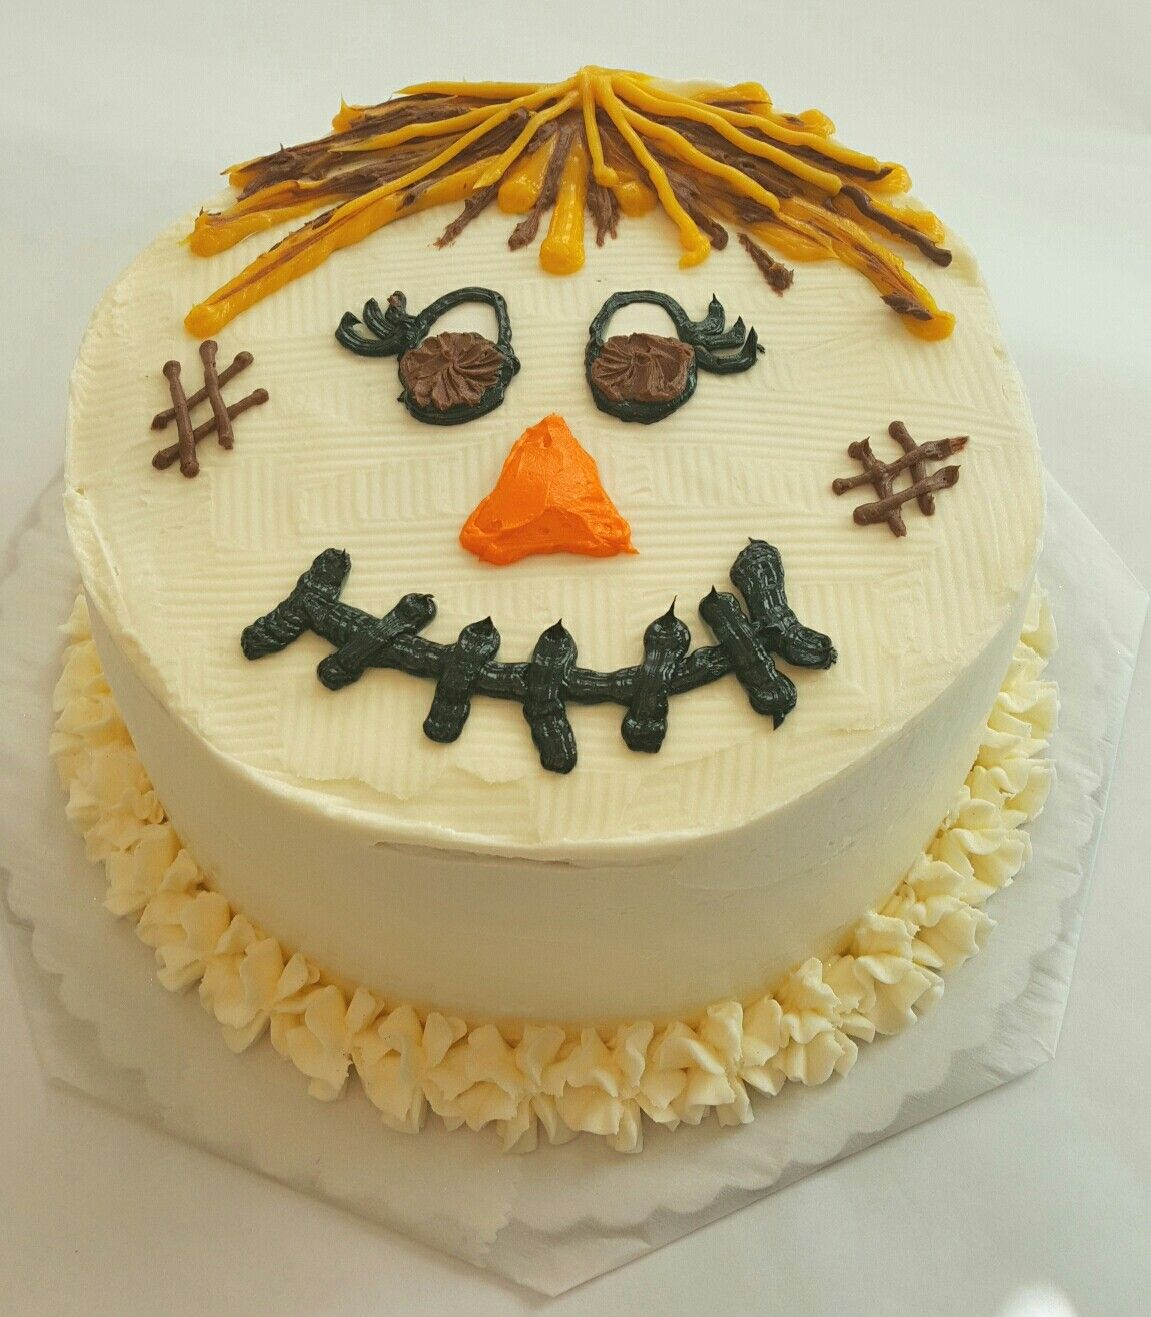 Scarecrow Cake Kit (Fall Bake Decorating) Cake decorating ideas - Halloween Cake Decorating Ideas